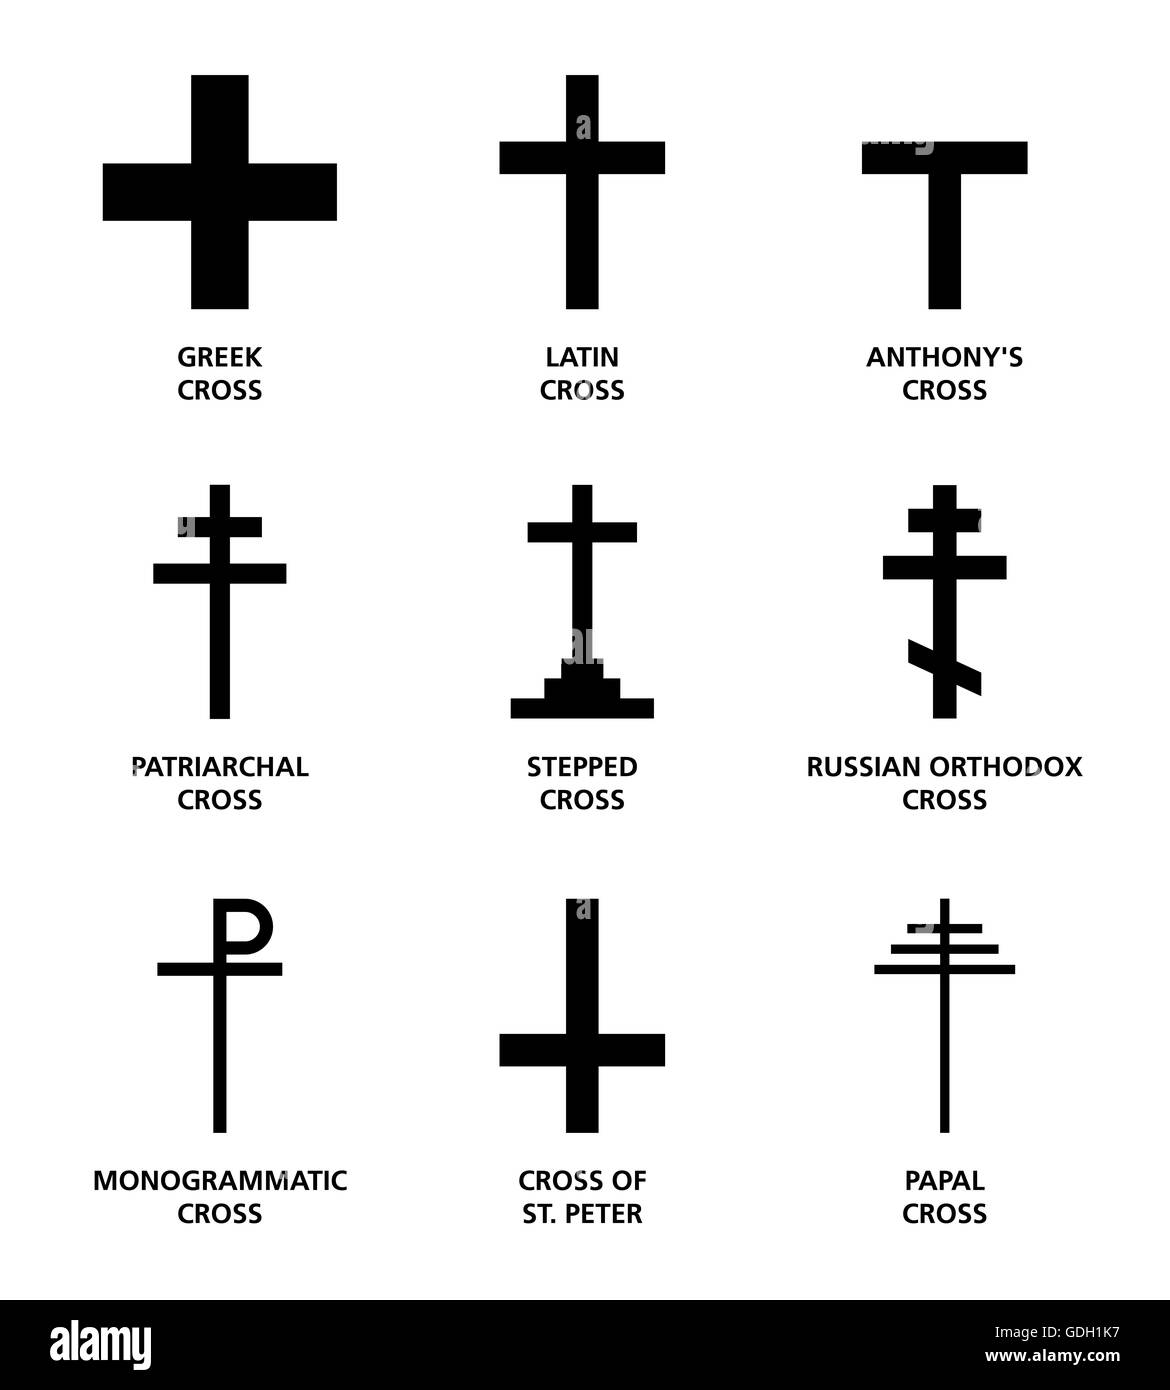 Russian Orthodox Symbols And Meanings